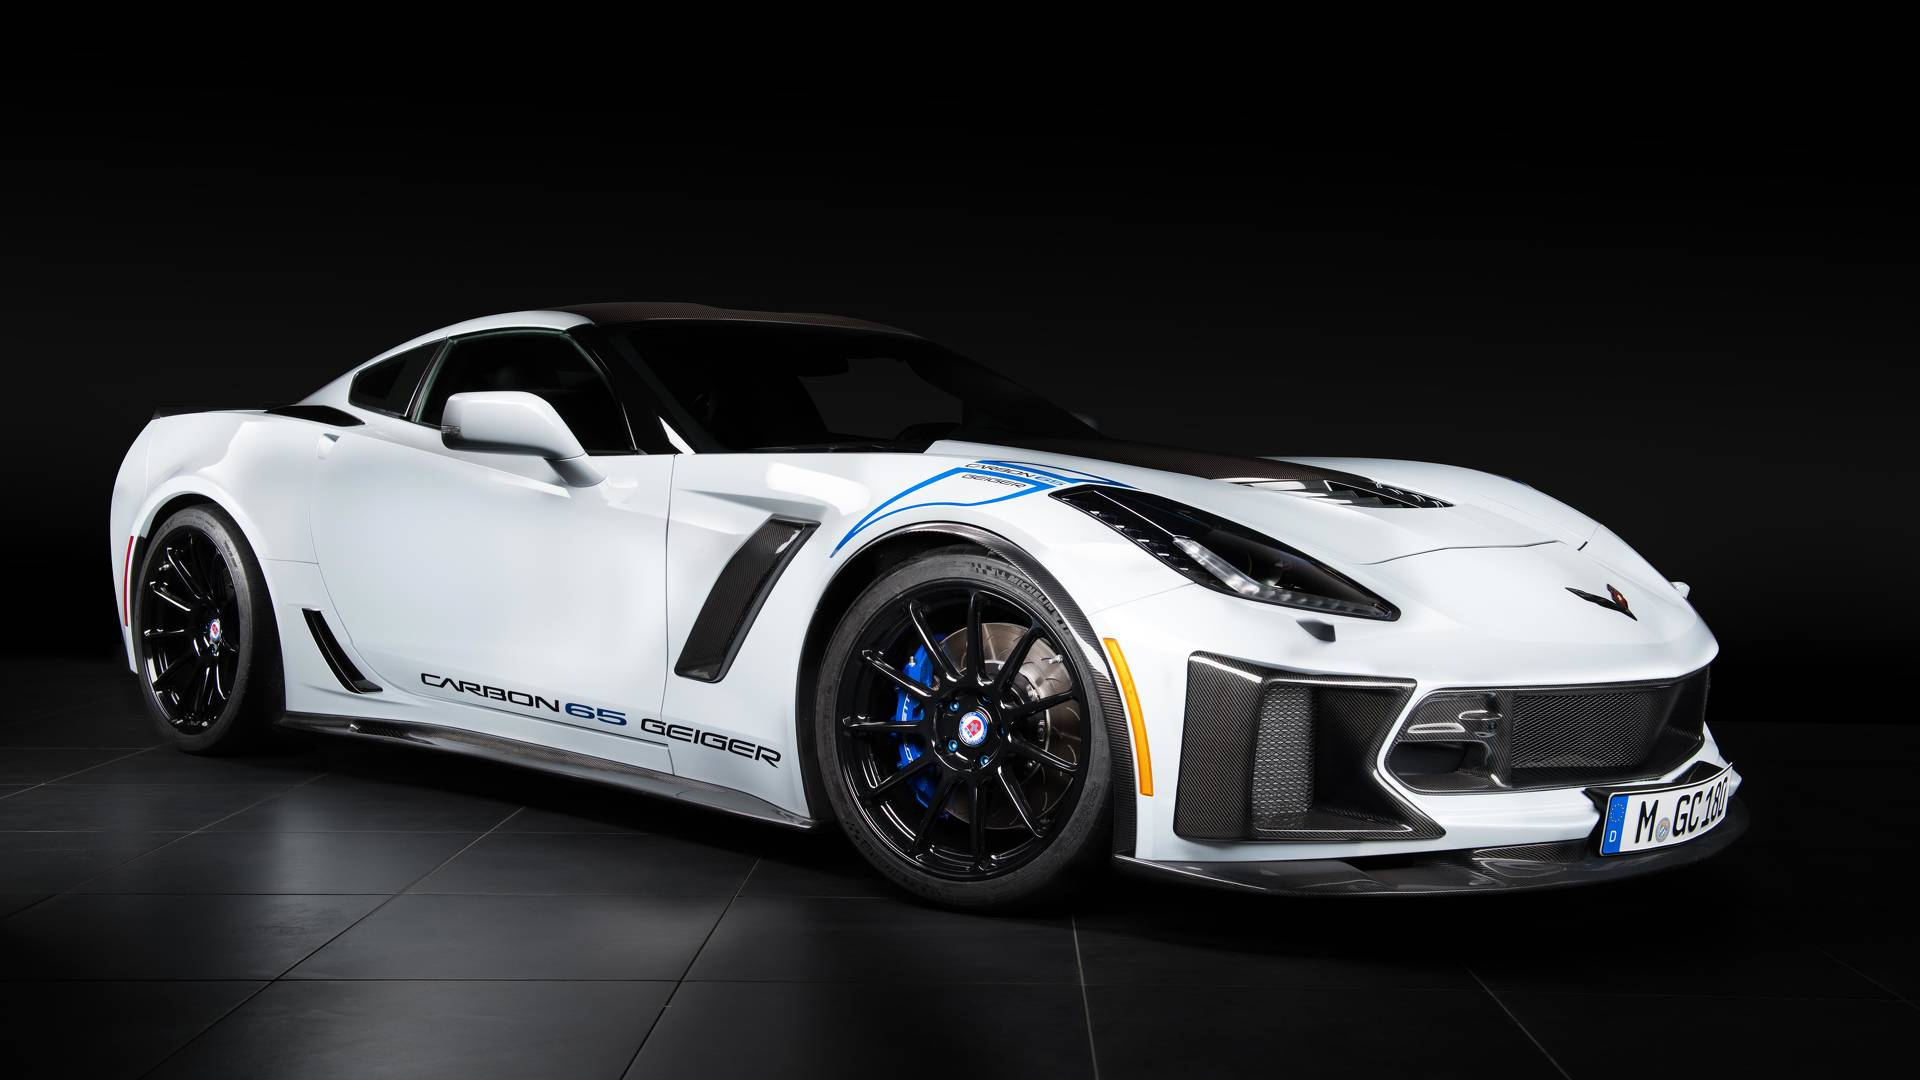 geiger-cars-chevy-corvette-carbon-65-edition